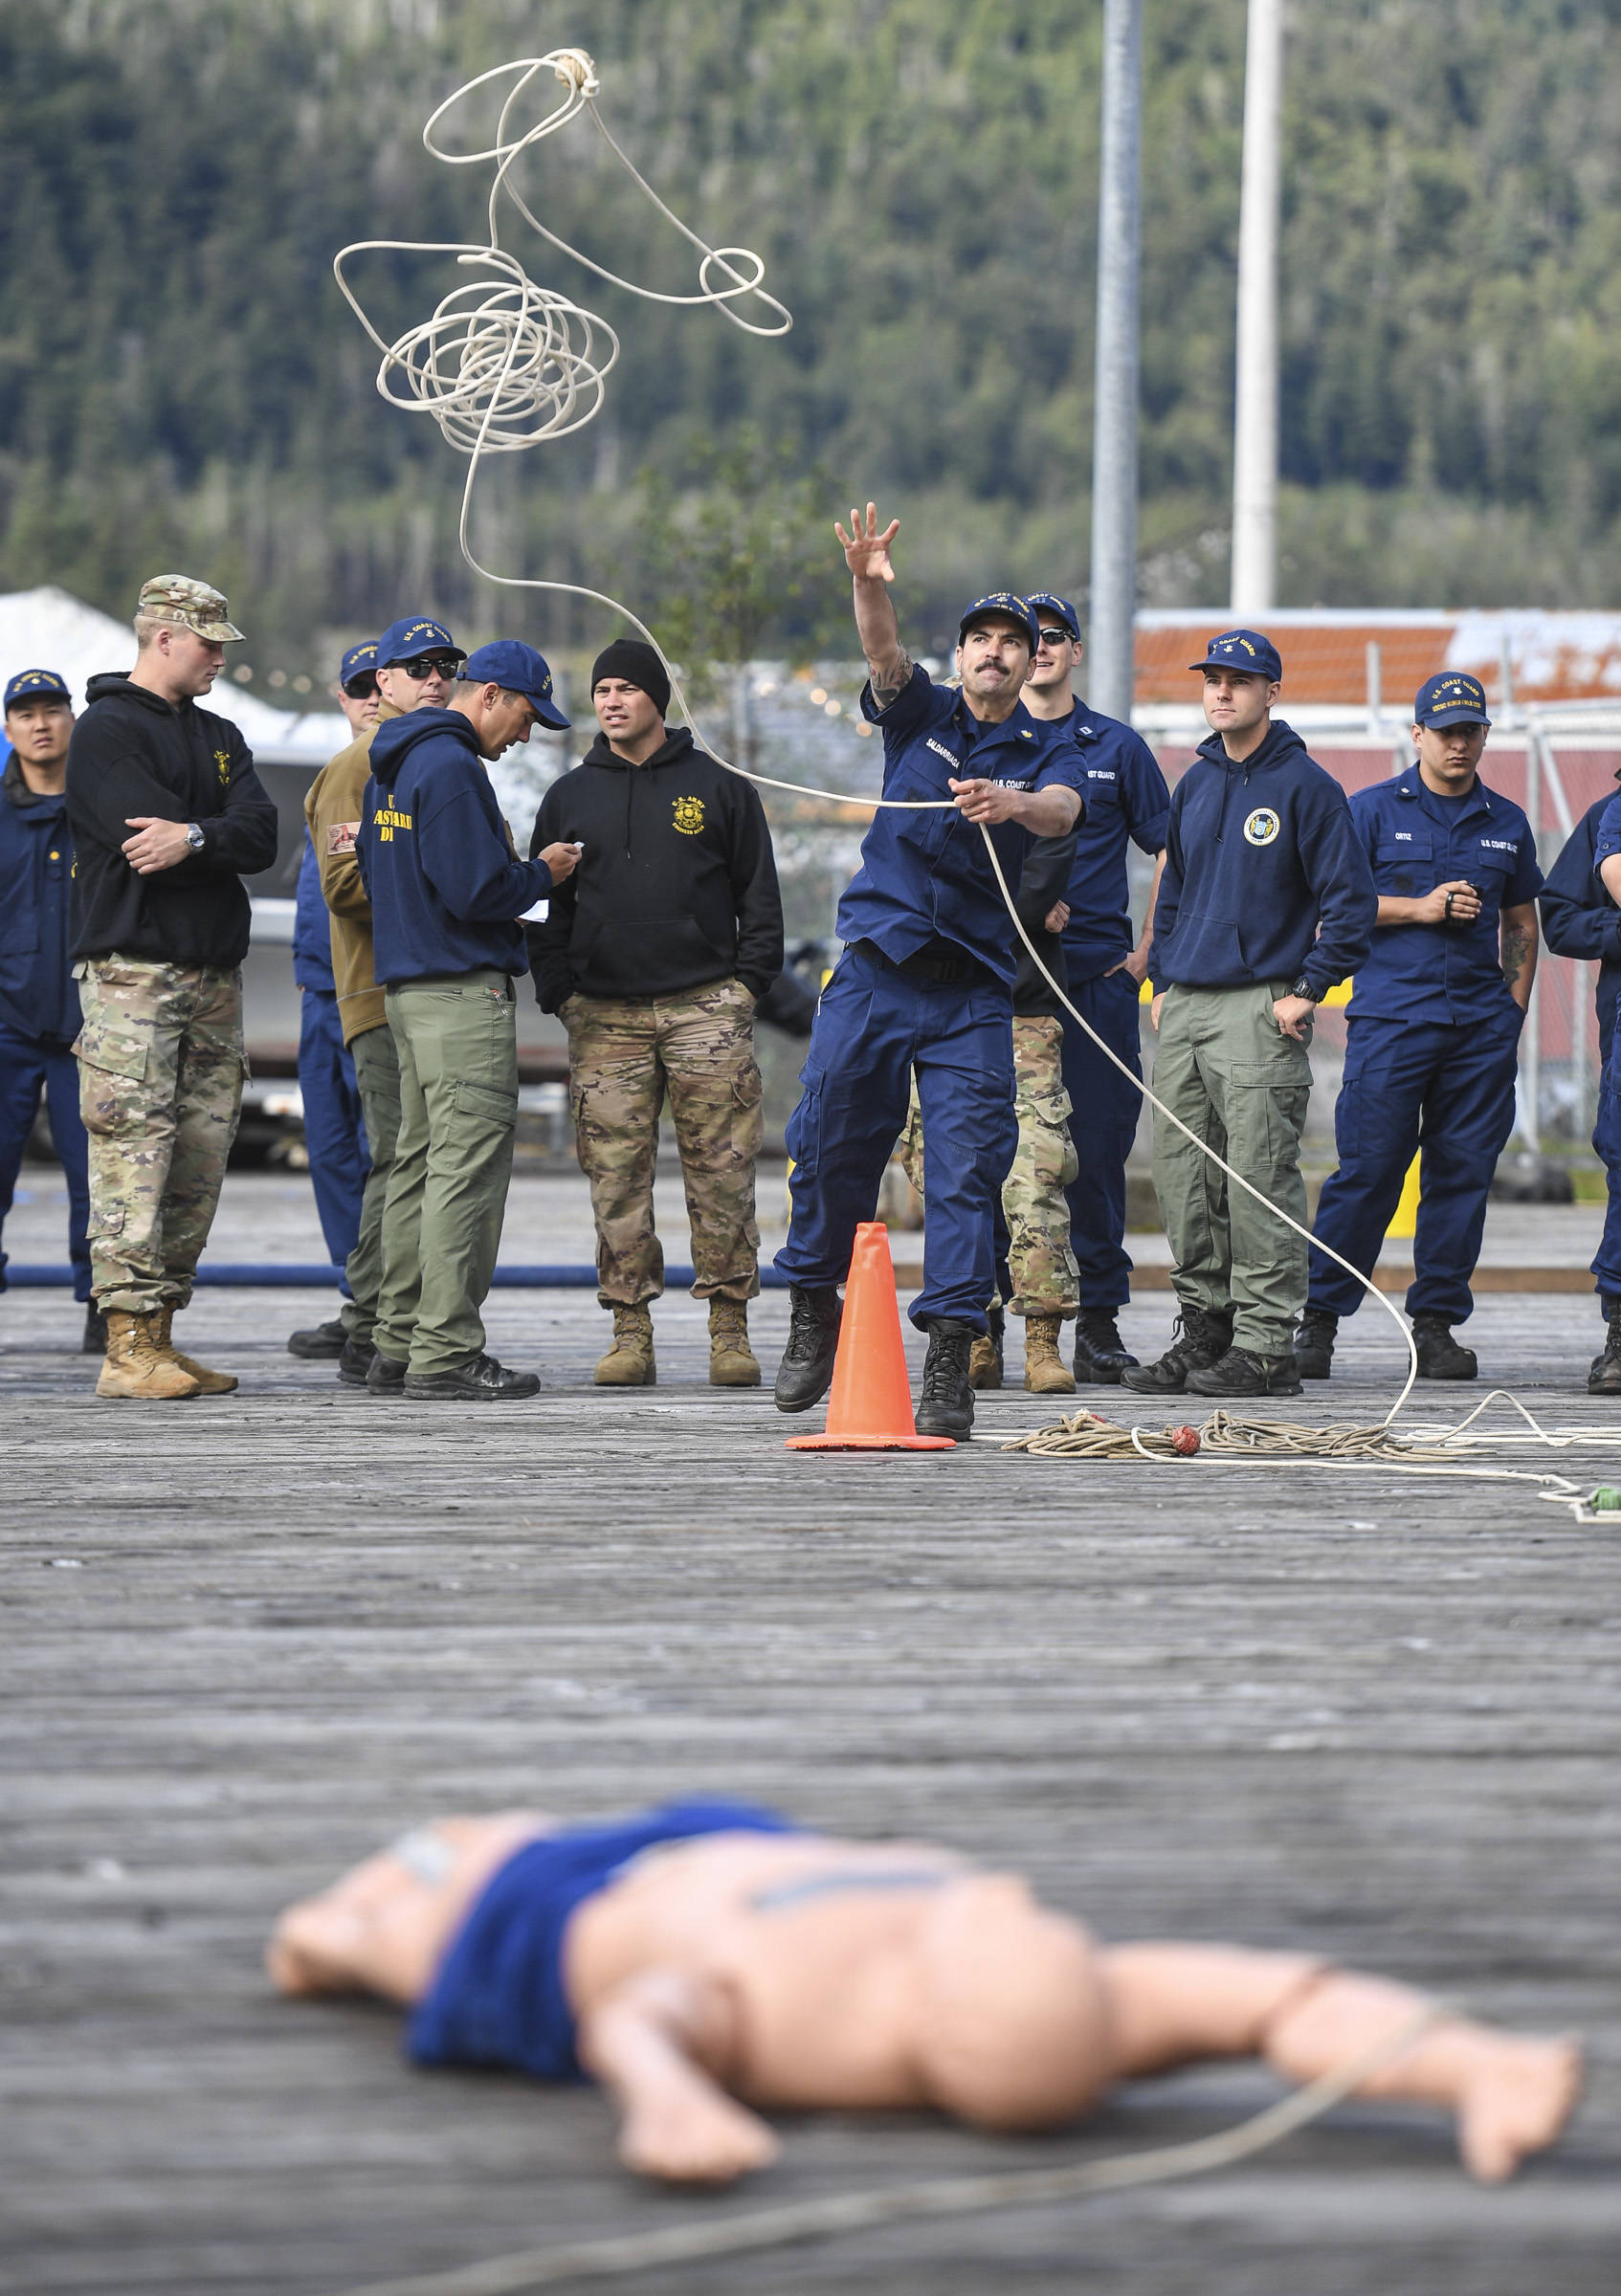 Marcos Saldarriaga, of the U.S. Coast Guard Cutter Kukui, competes in the rope throw during the annual Buoy Tender Olympics at Station Juneau on Wednesday, Aug. 21, 2019. (Michael Penn | Juneau Empire)